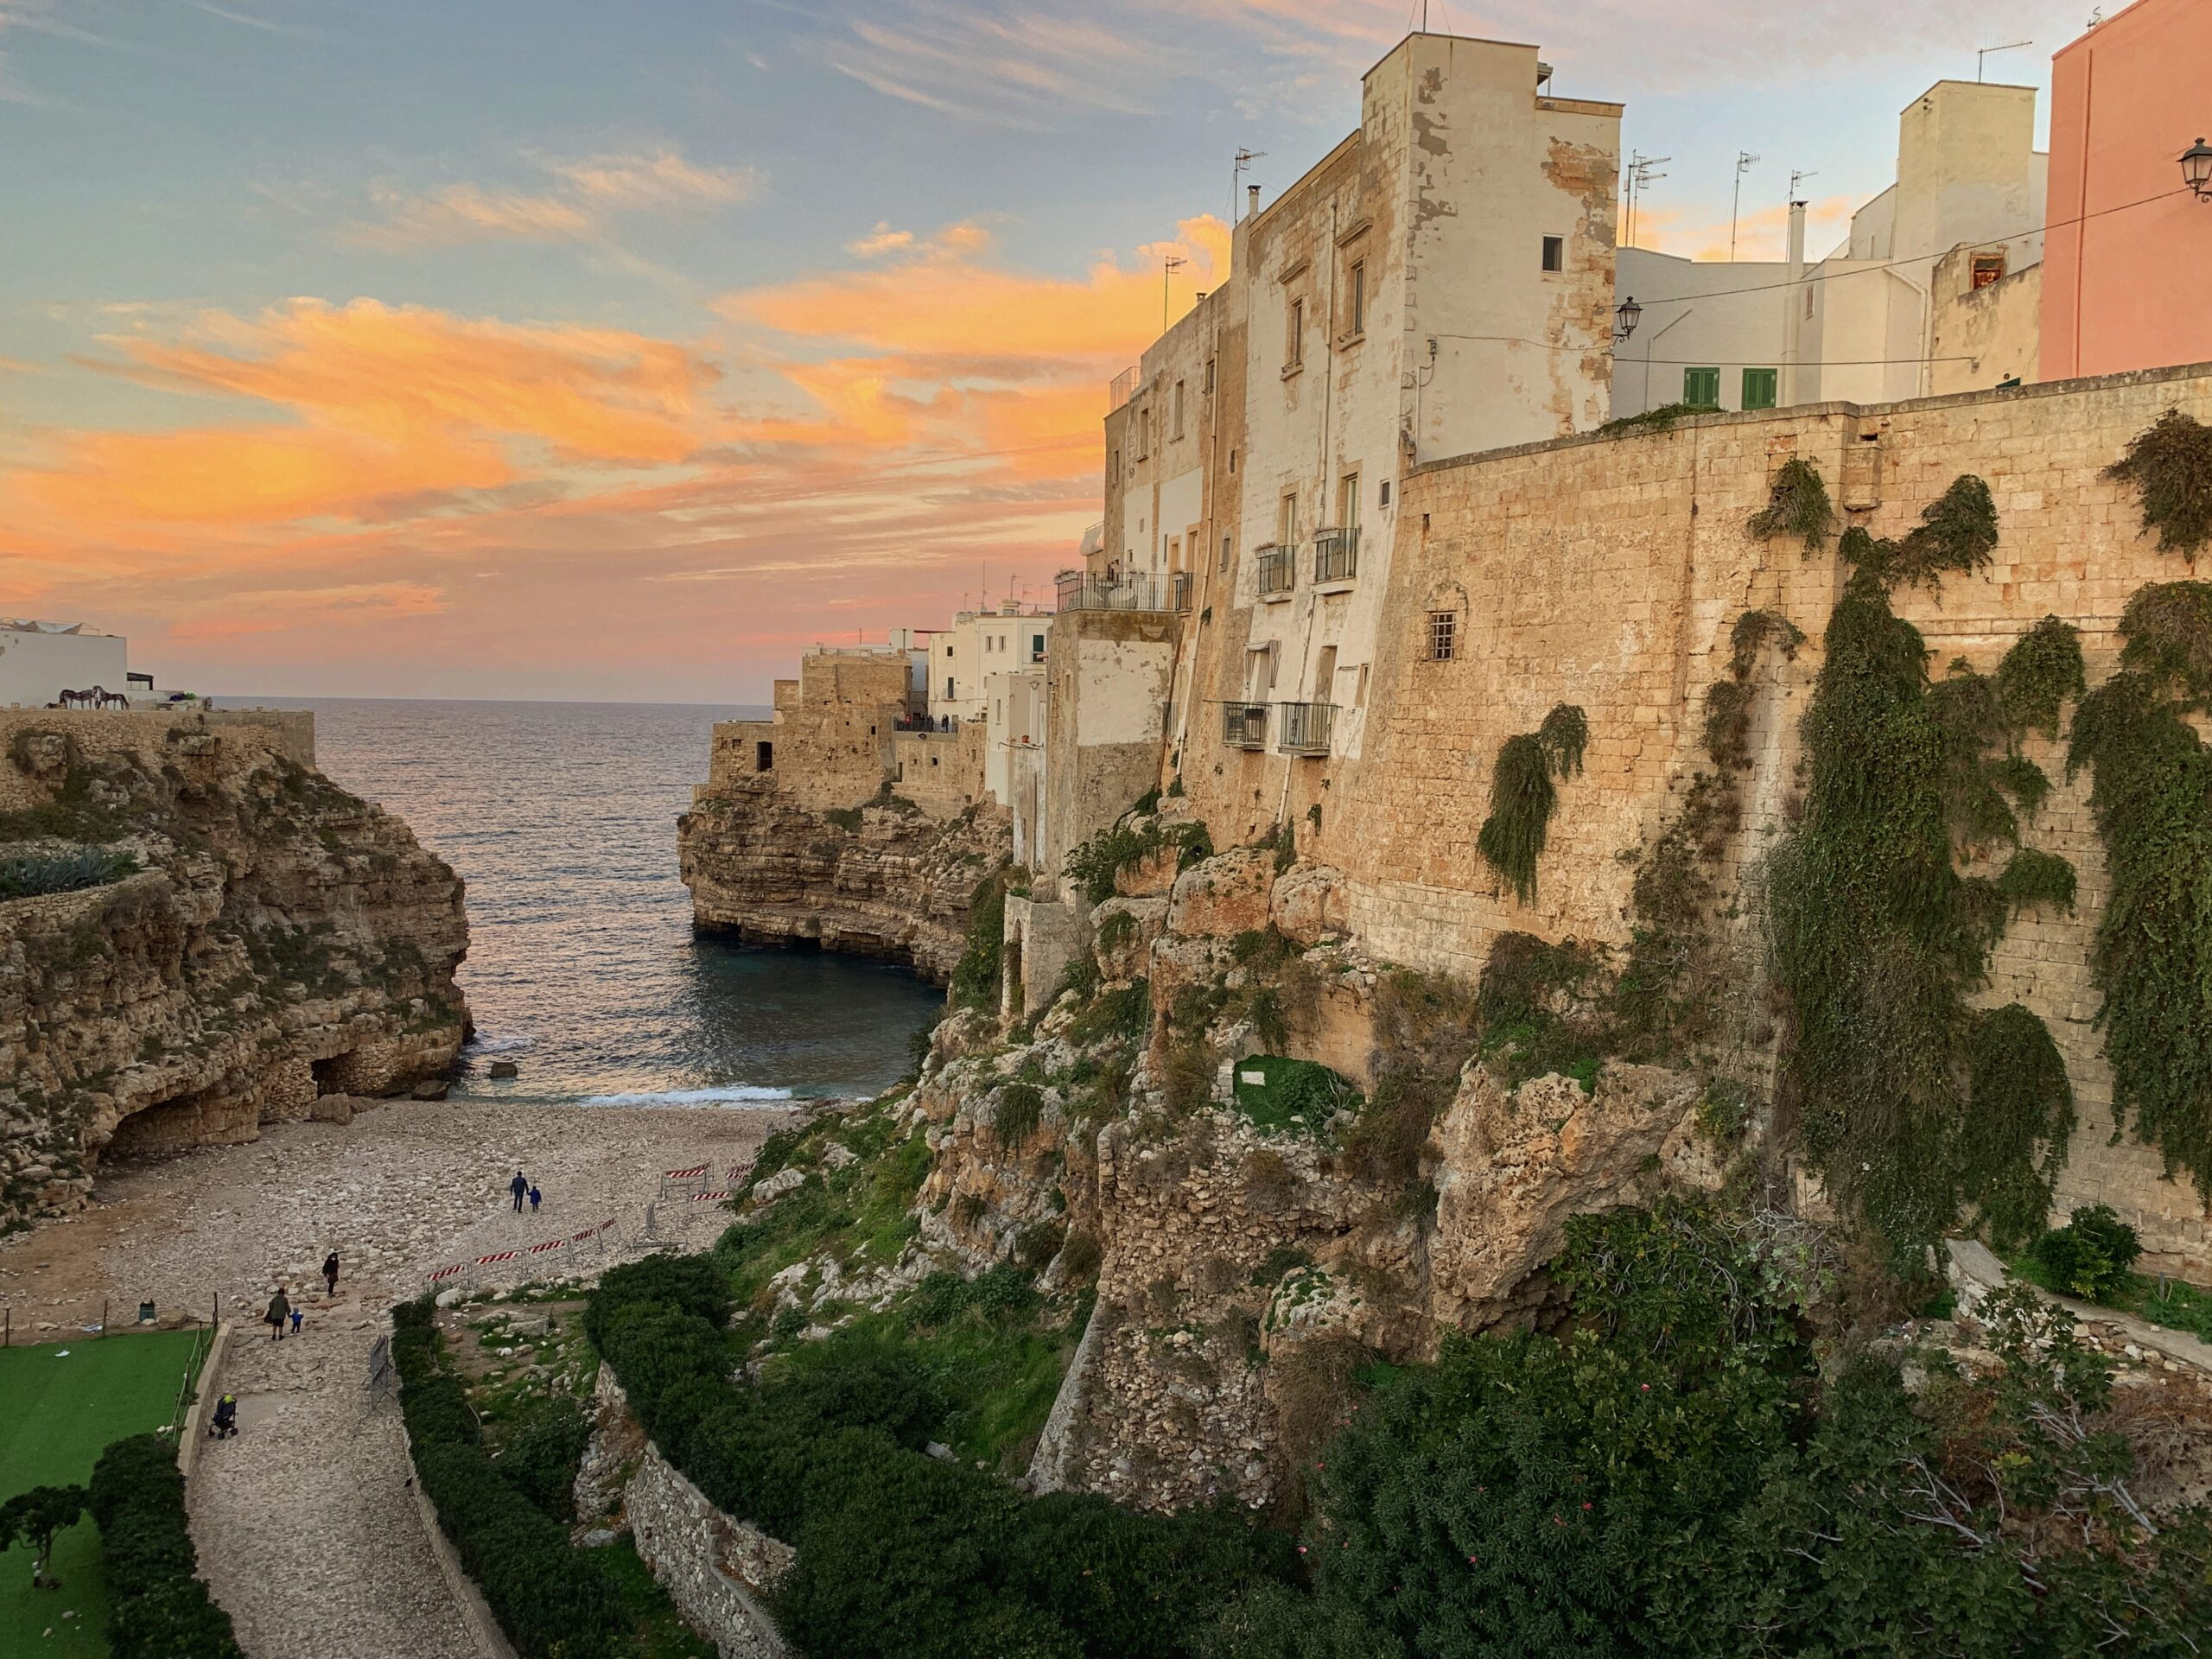 Polignano a Mare - the town with the iconic cliffs is a favourite of the Big Gay Podcast from Puglia gay travel guide.